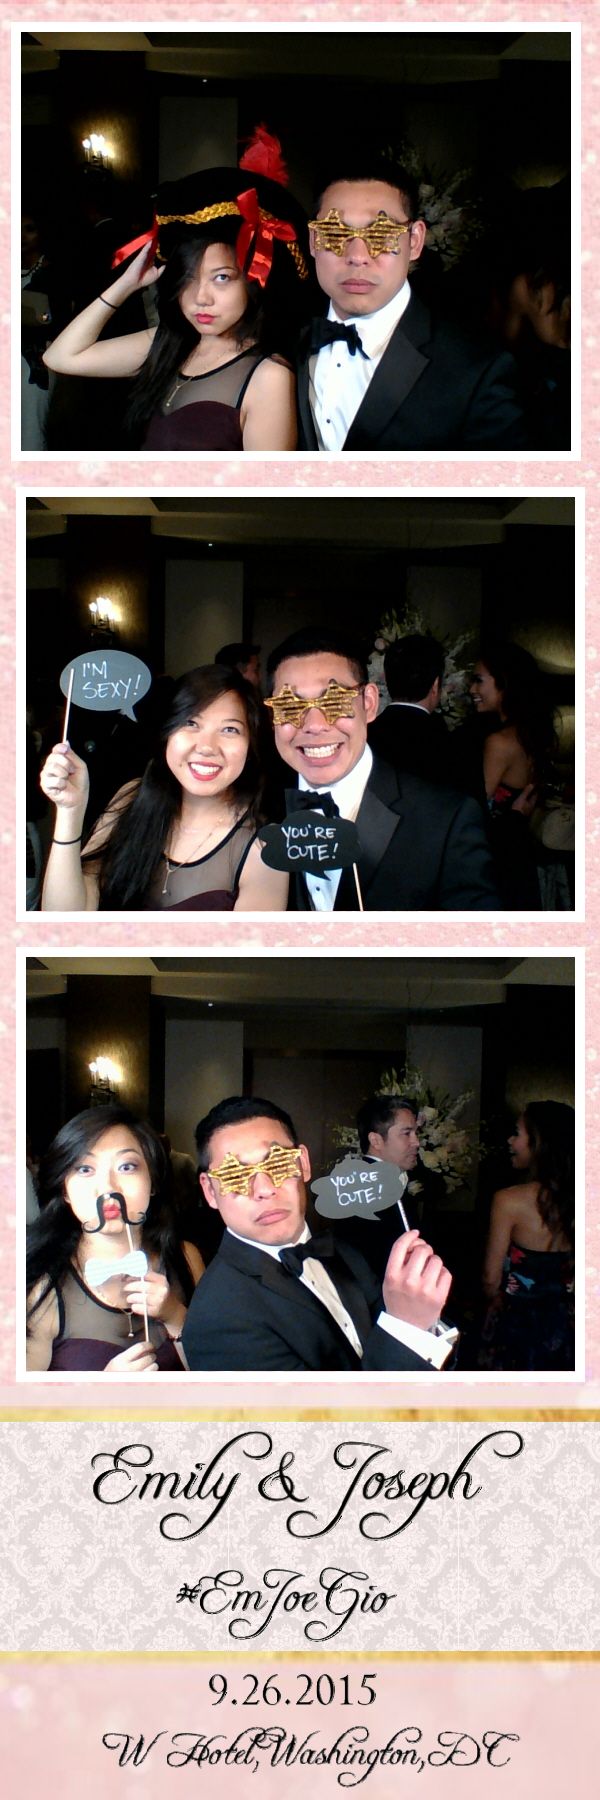 Guest House Events Photo Booth E&J (55).jpg